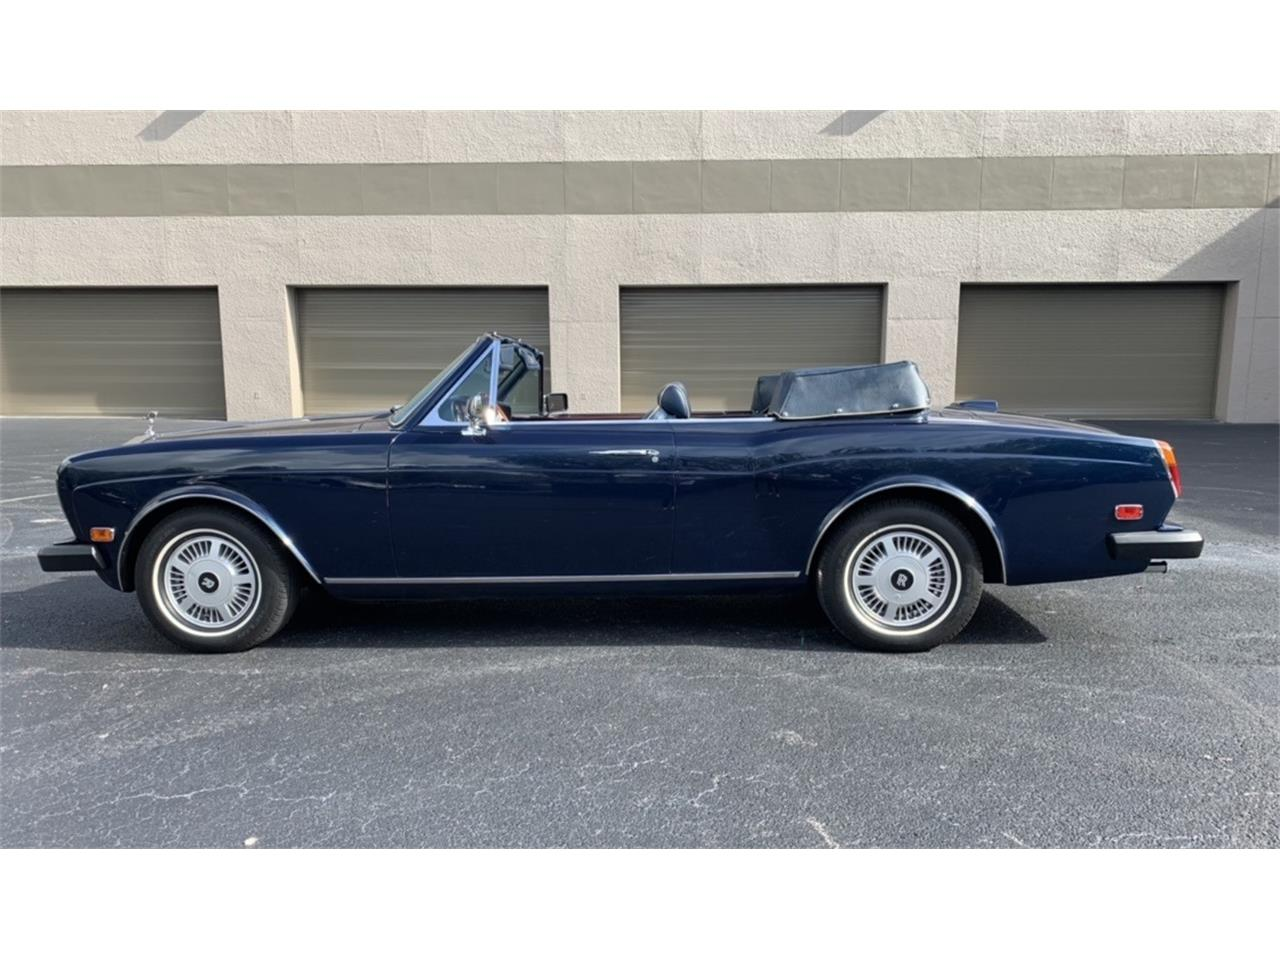 Large Picture of 1983 Rolls-Royce Corniche located in BOCA RATON Florida - $59,000.00 - PUCW